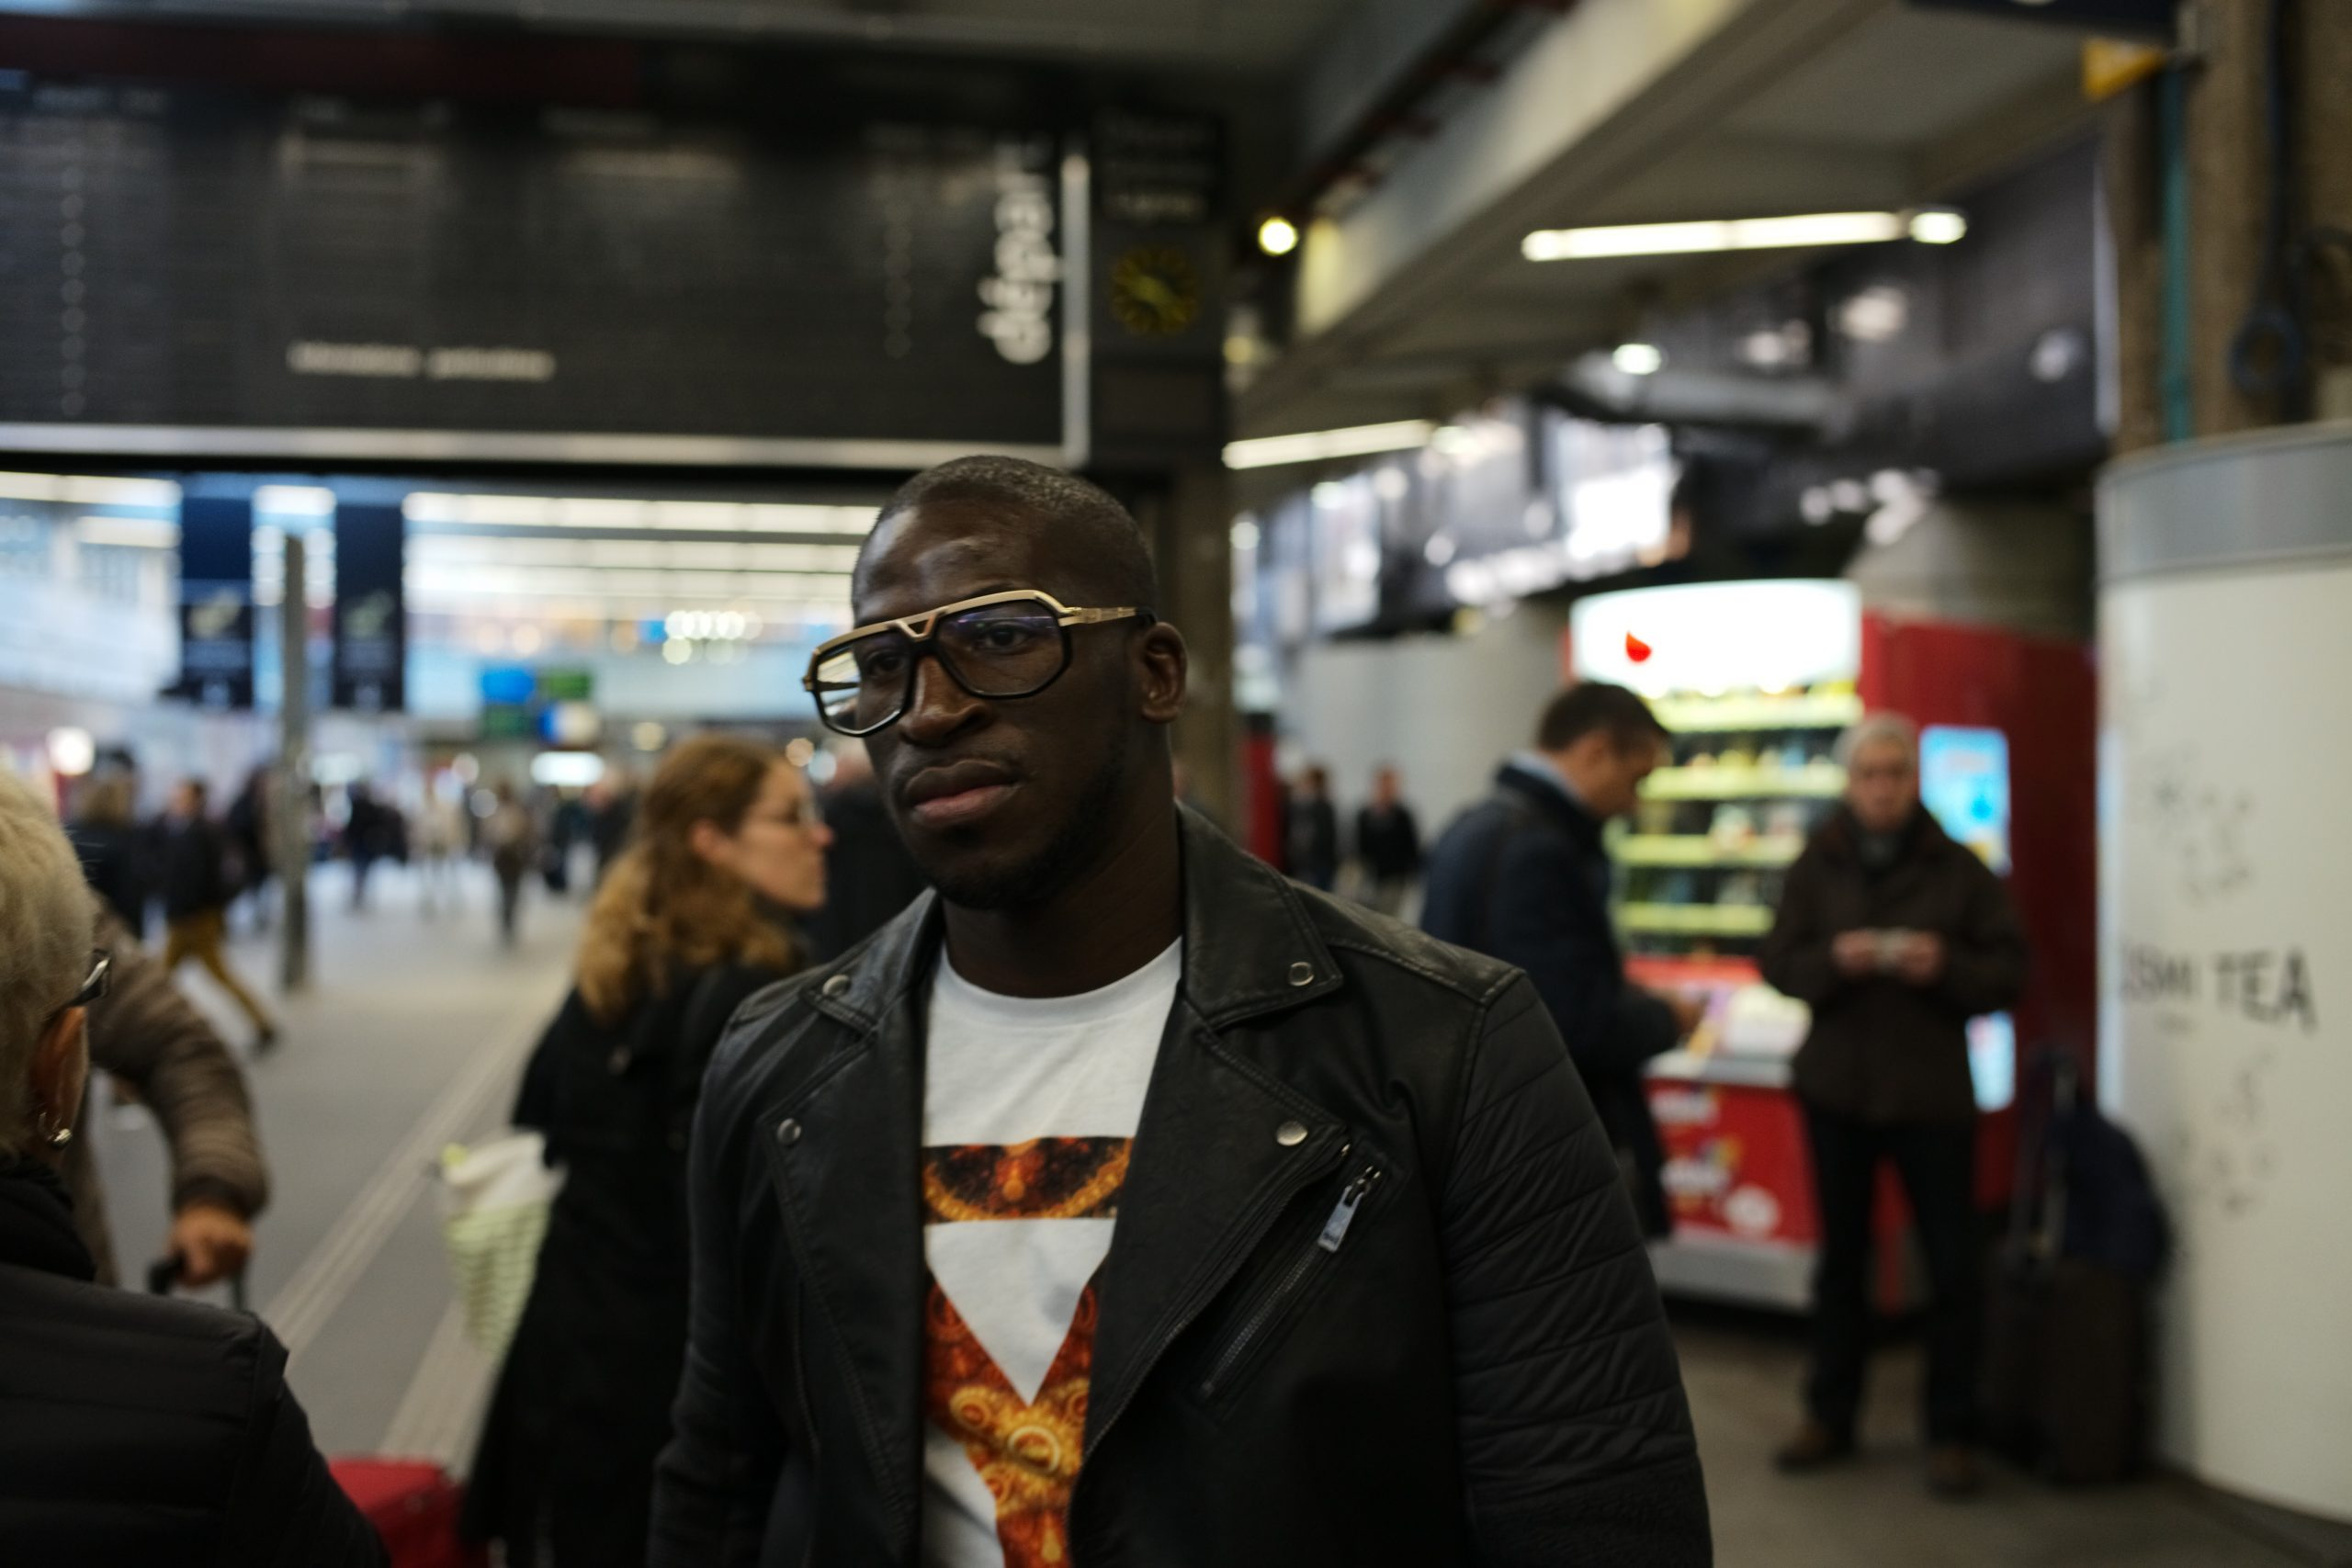 Cool leather jacket dude in Paris Montparnasse train station - Leica M10